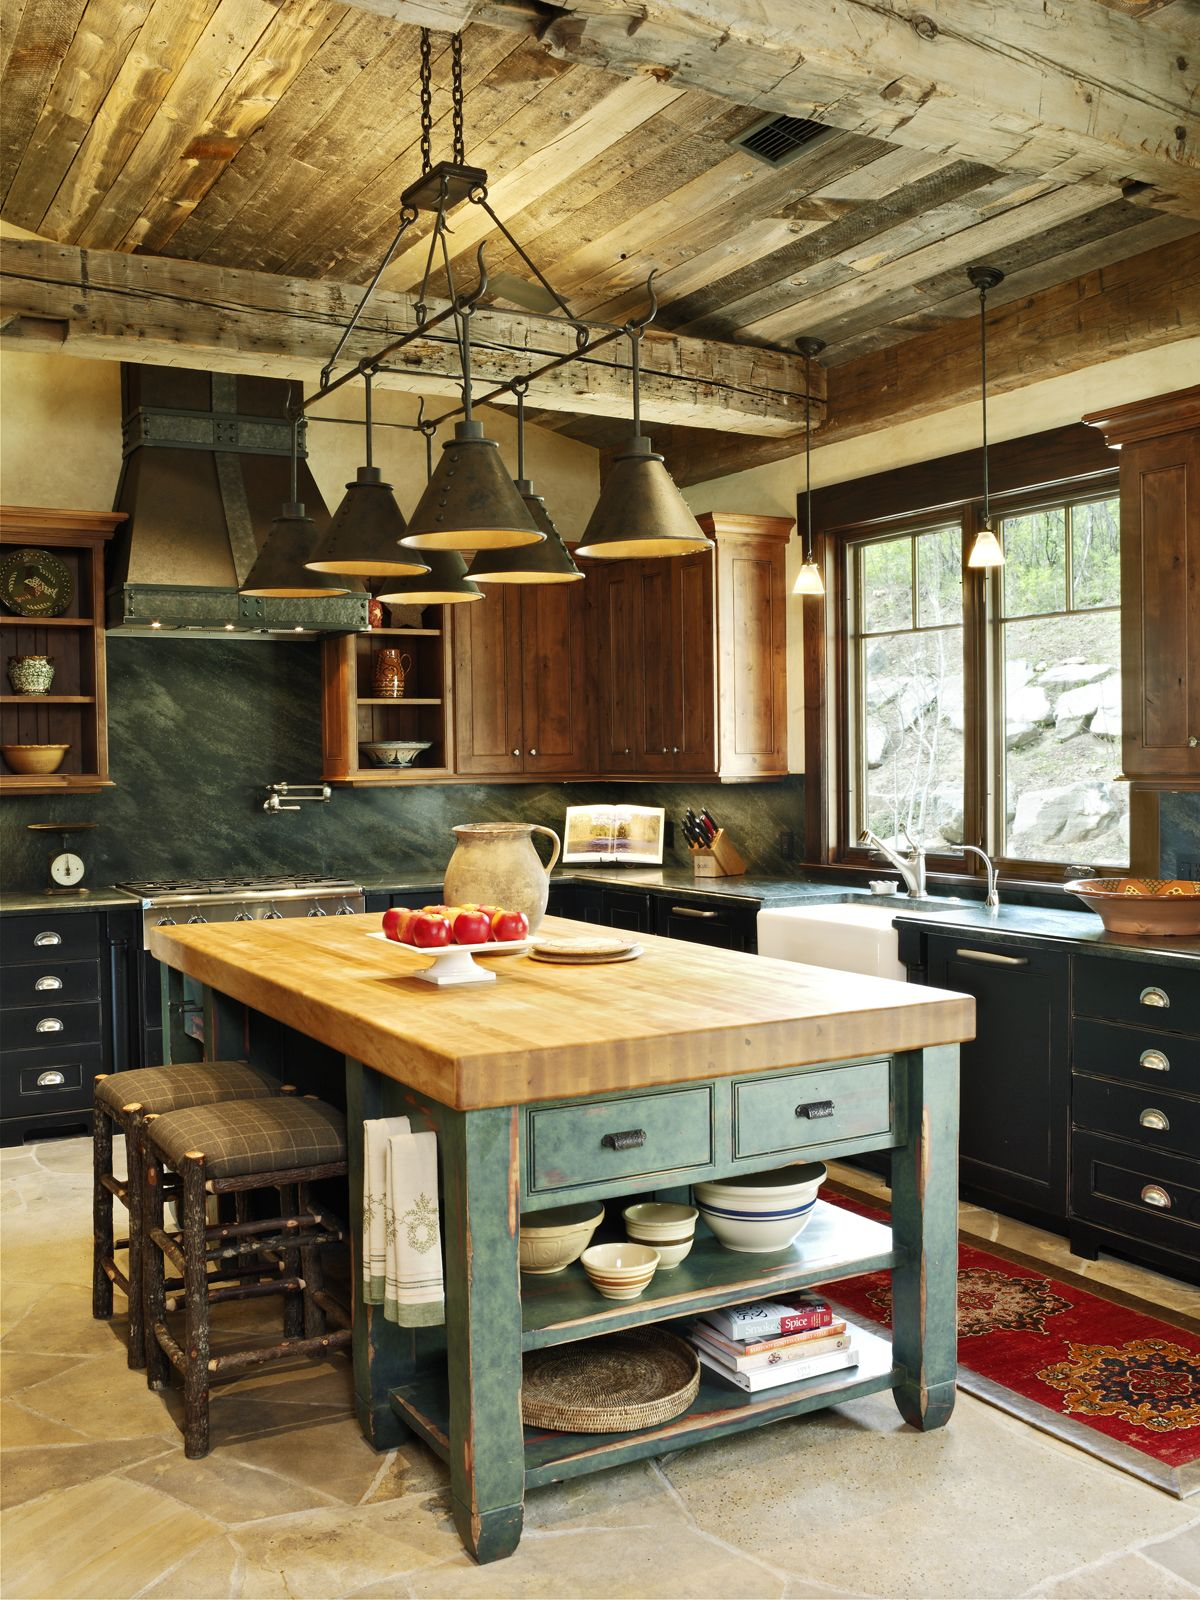 Kitchen rustic kitchen kitchen island butcher block island rustic chandelier kitchen lighting kitchen island lighting wood beams wood ceiling